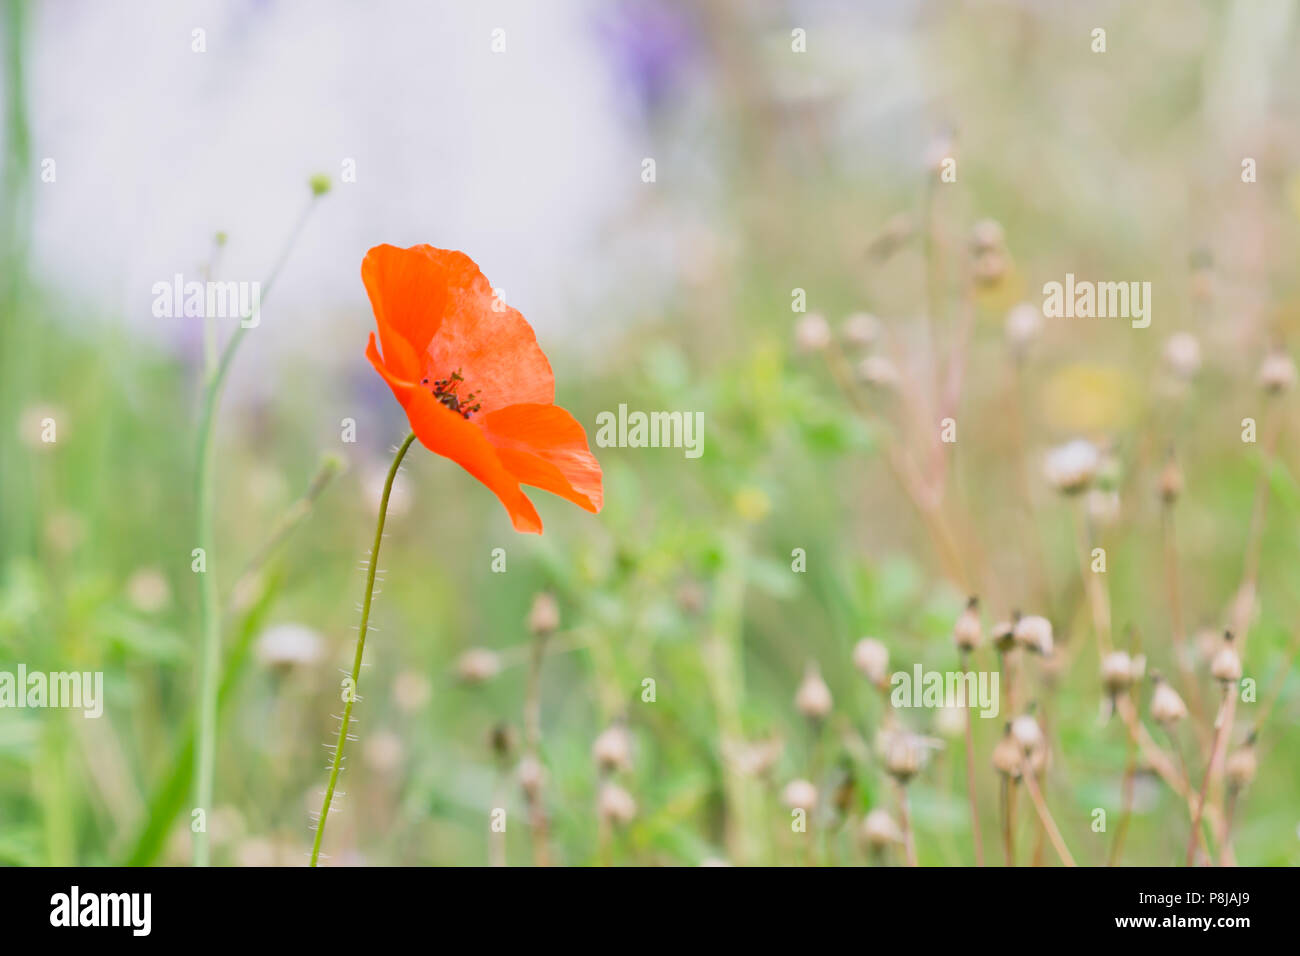 Poppy Flower Summer Meadow Color Explosion Stock Photo 211845153